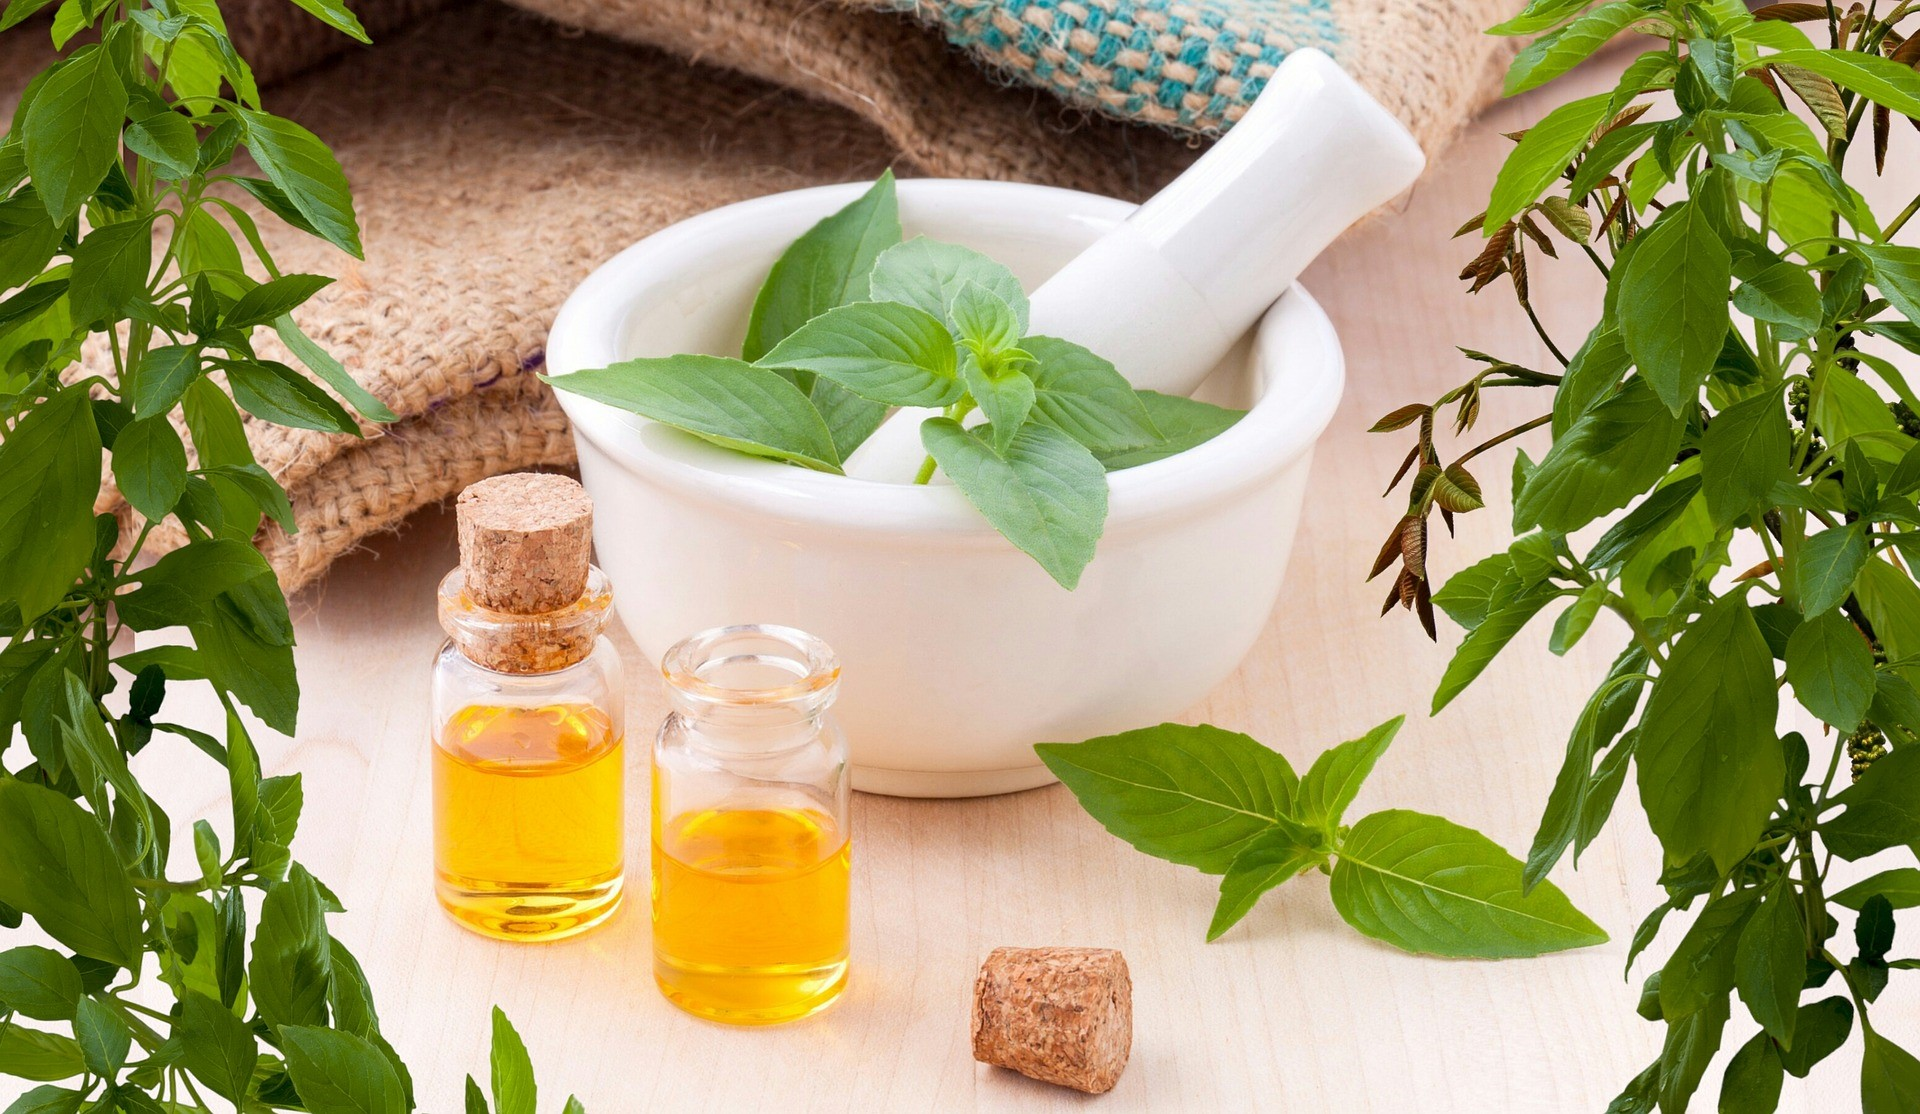 Cancer Treatment with Traditional Medicine